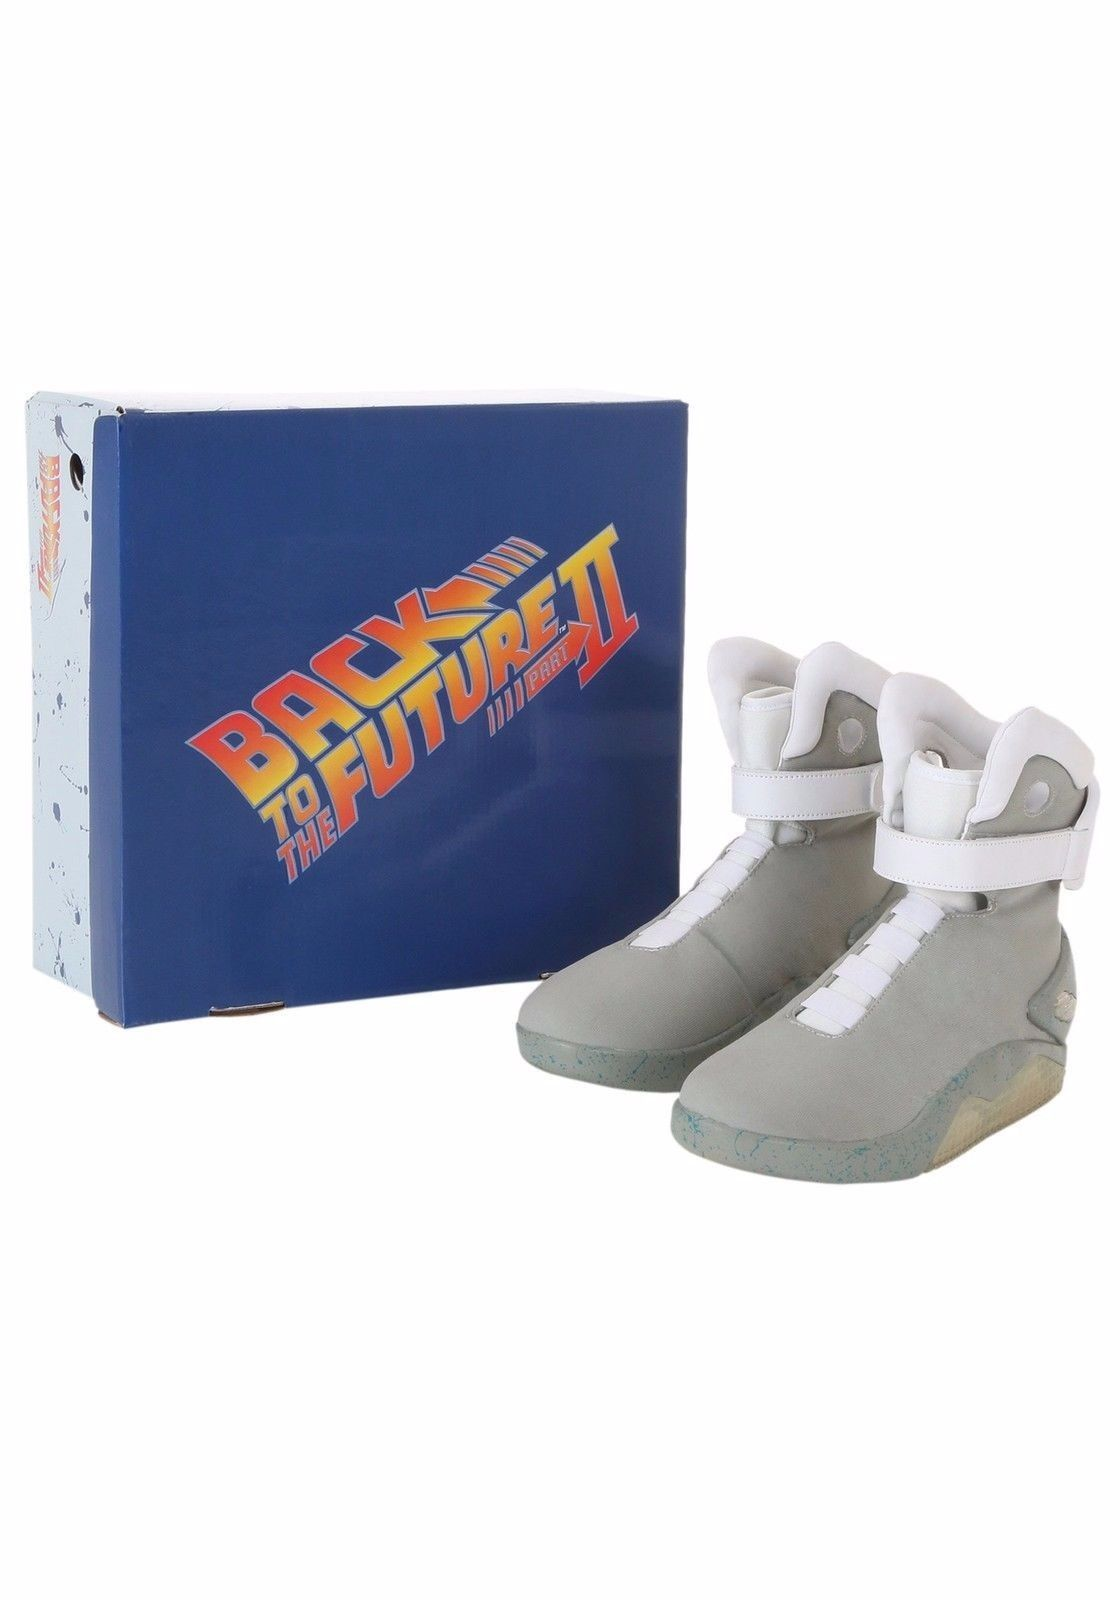 Image of Back to the Future 2 Light Up Shoes - Size 13 - New